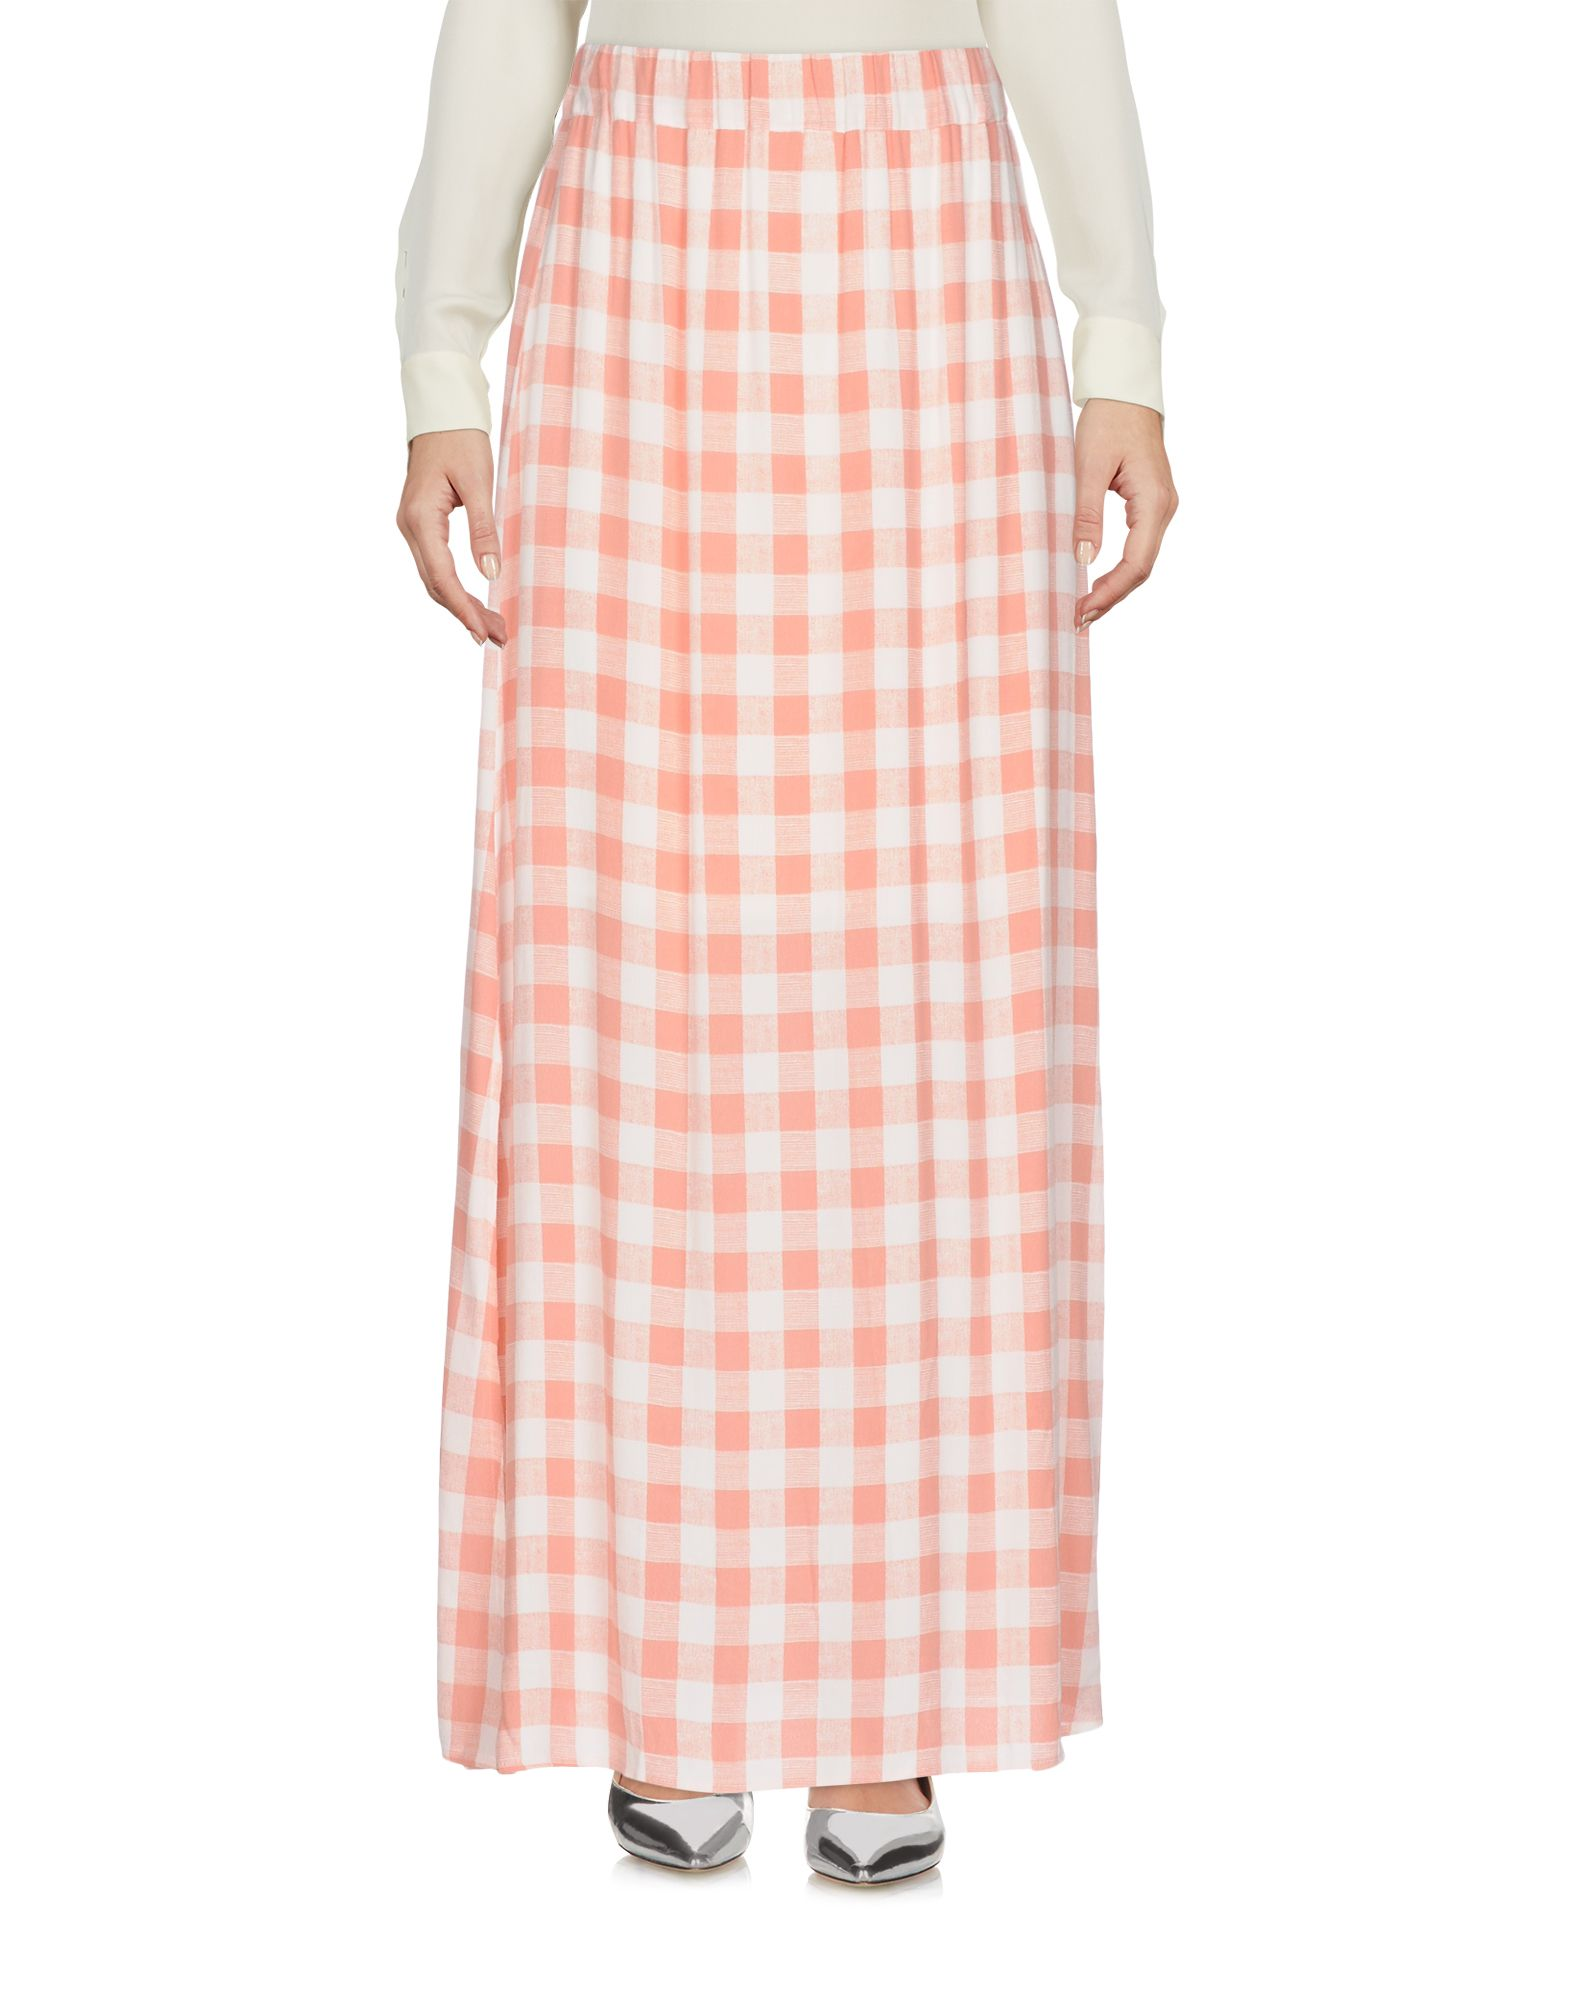 American Vintage Maxi Skirts